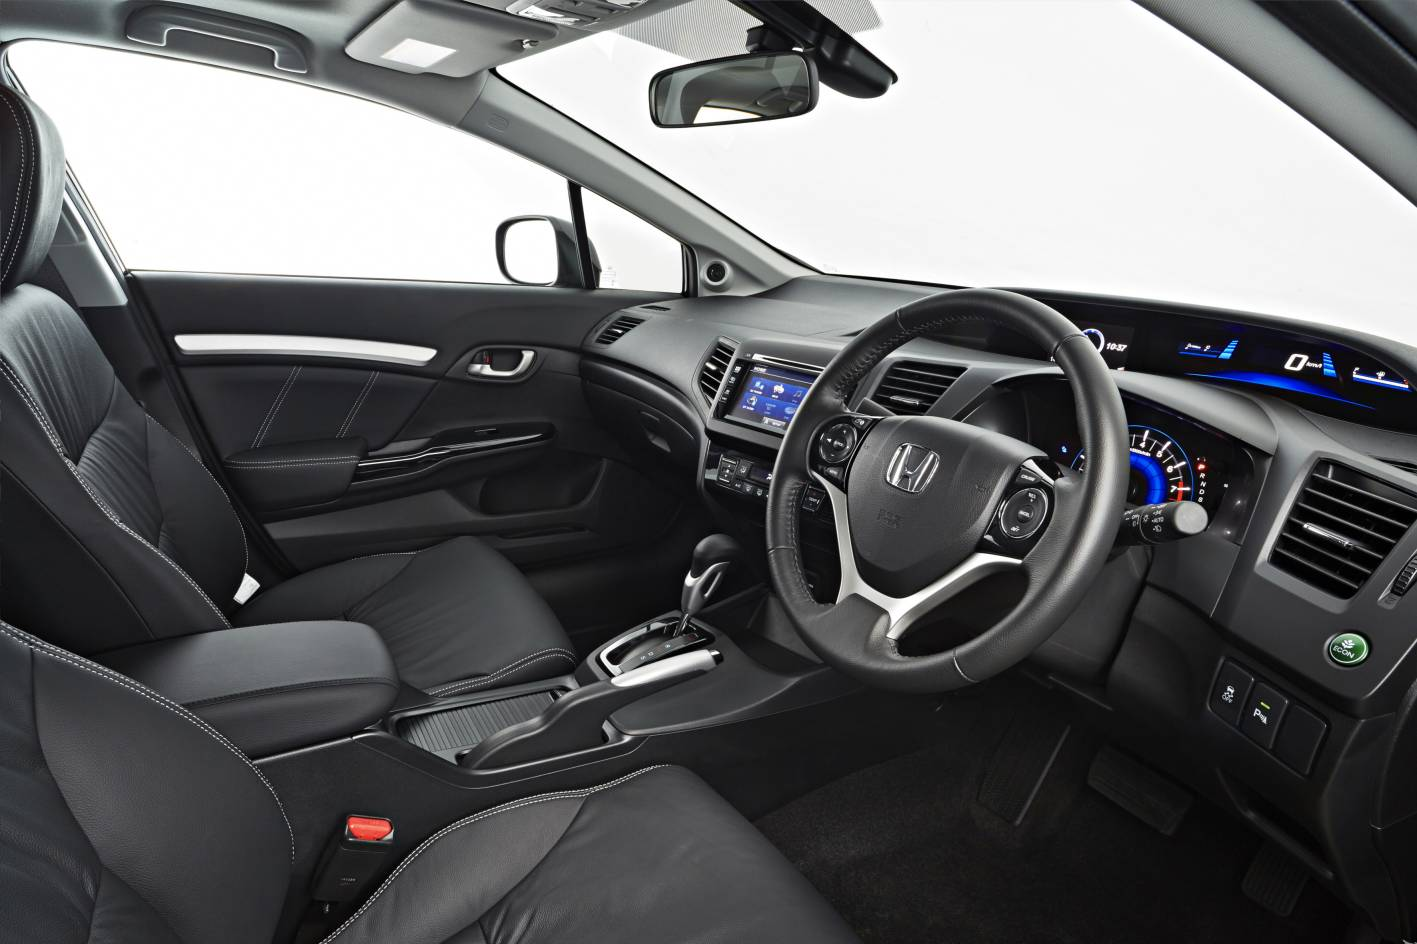 New 2012 Honda Civic Interior Release And Price On Prices Autos Post